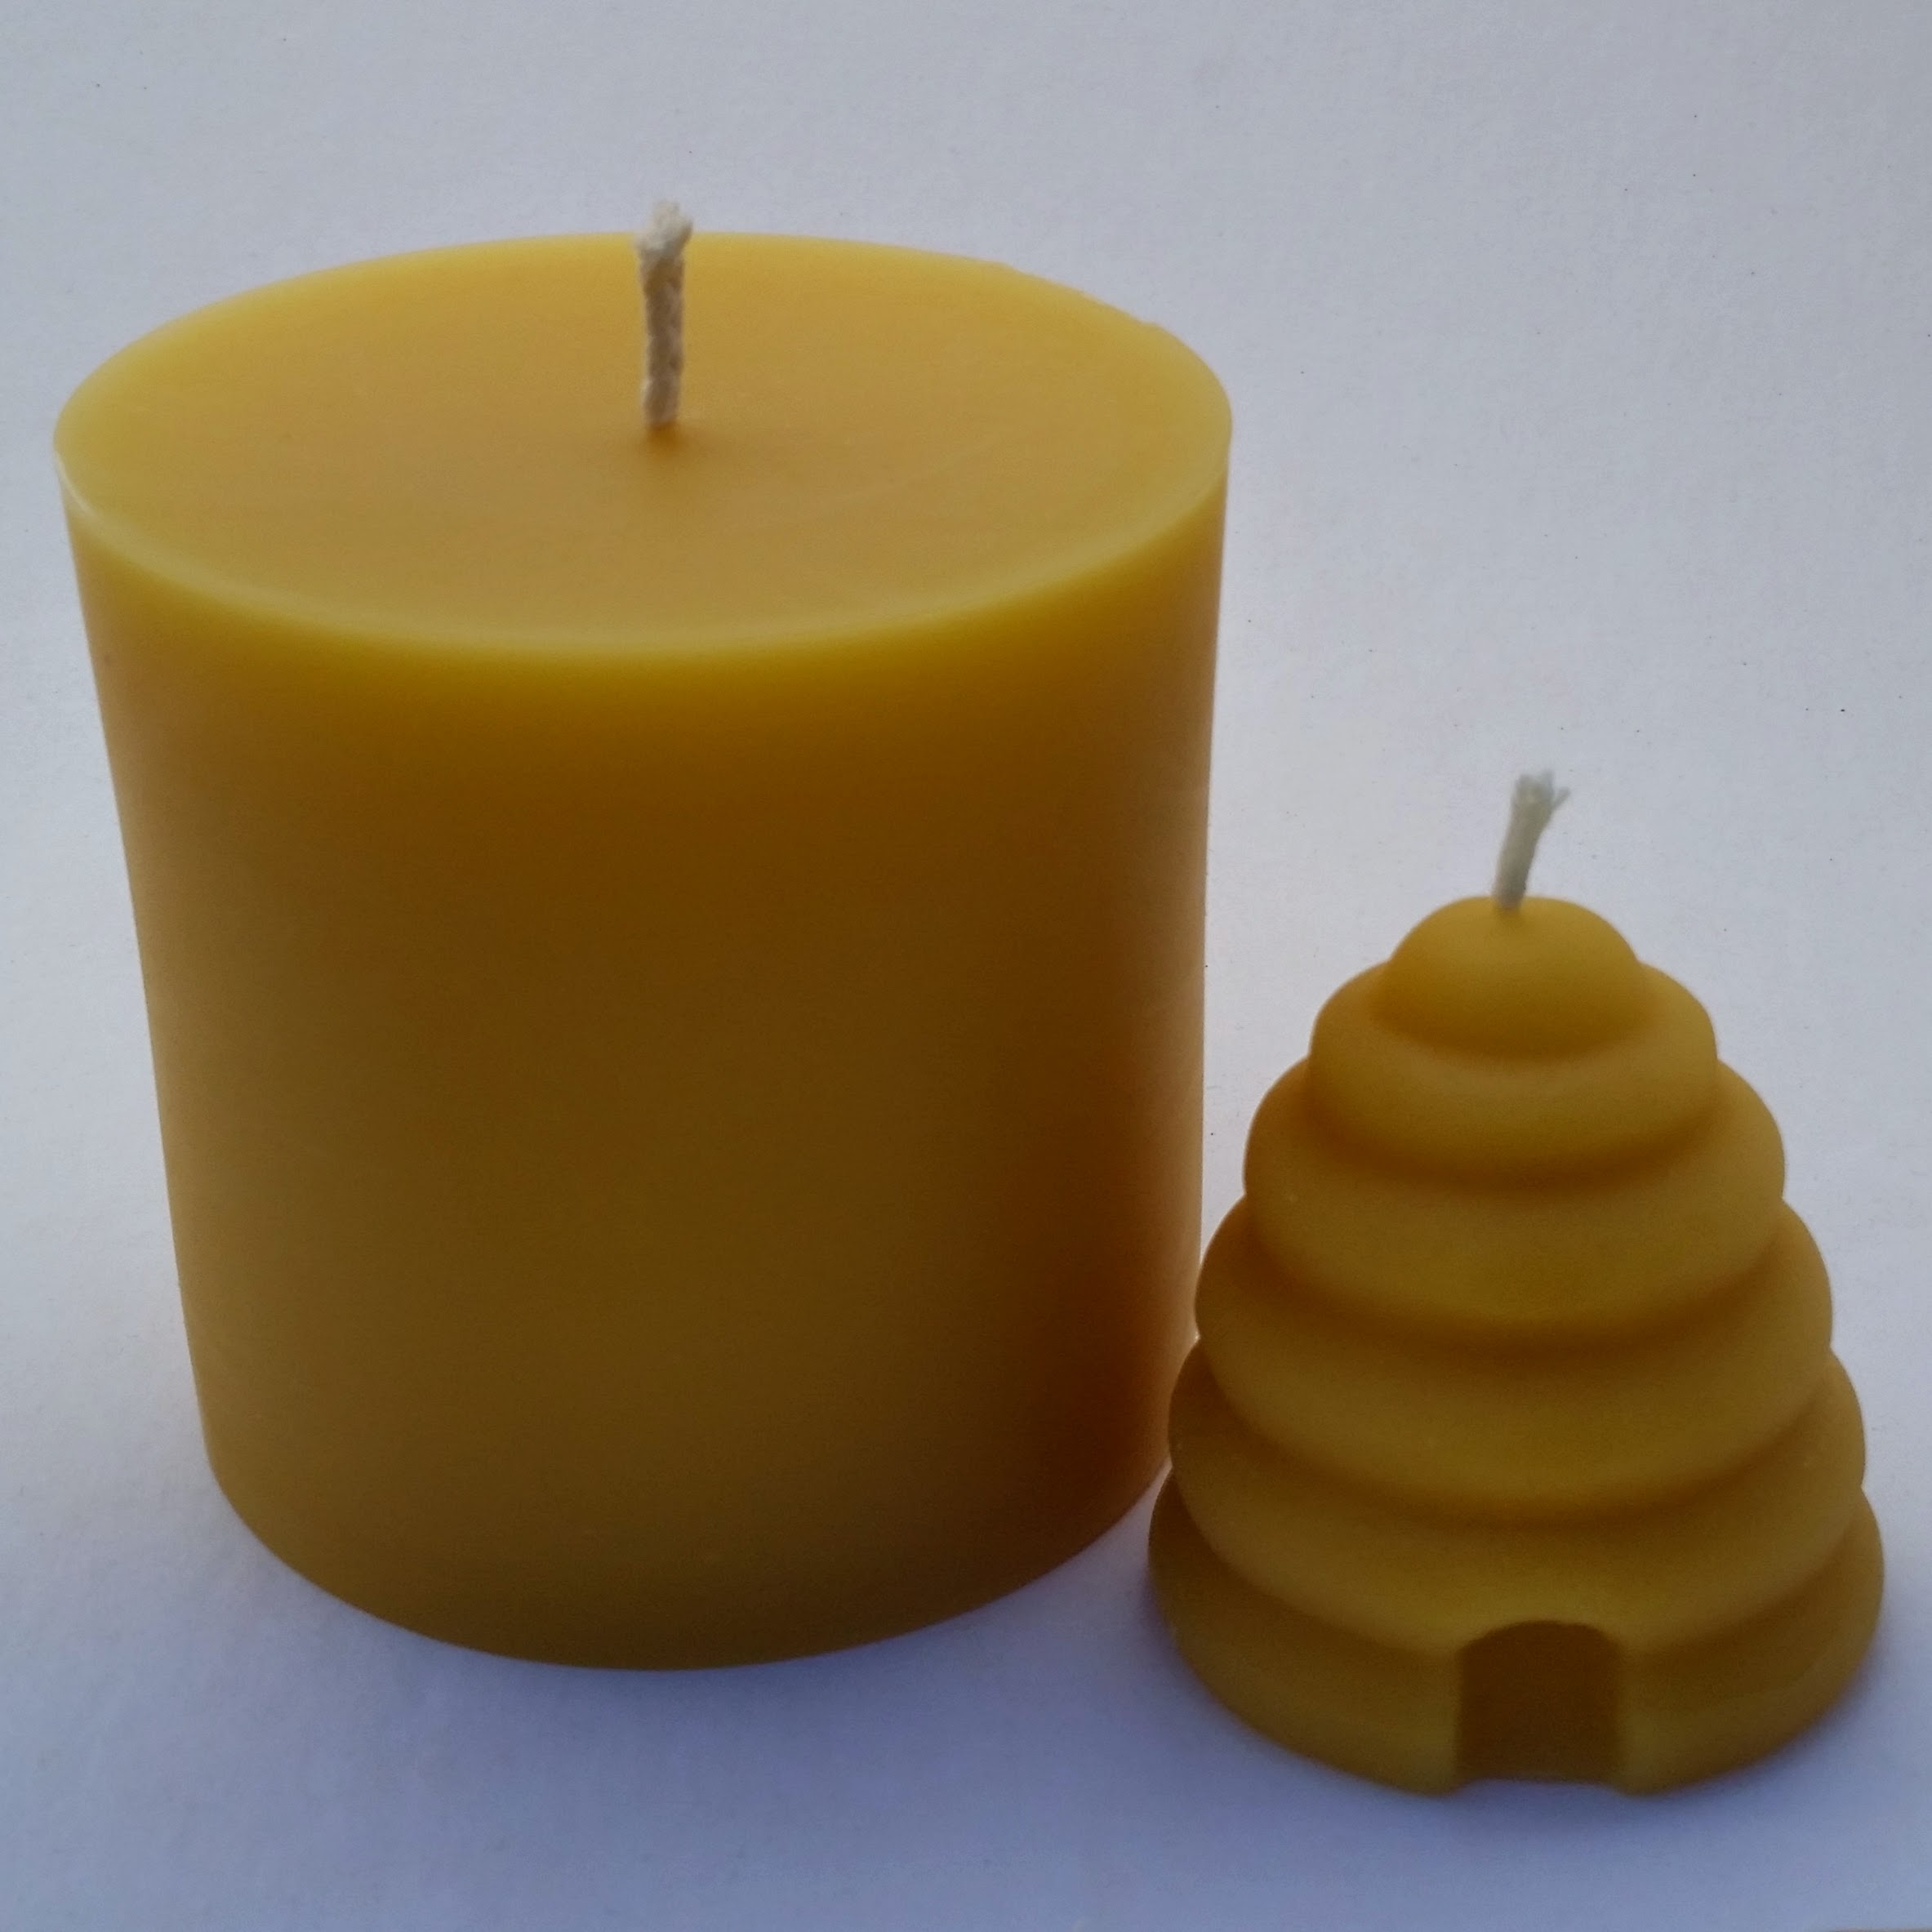 Beeswax Products